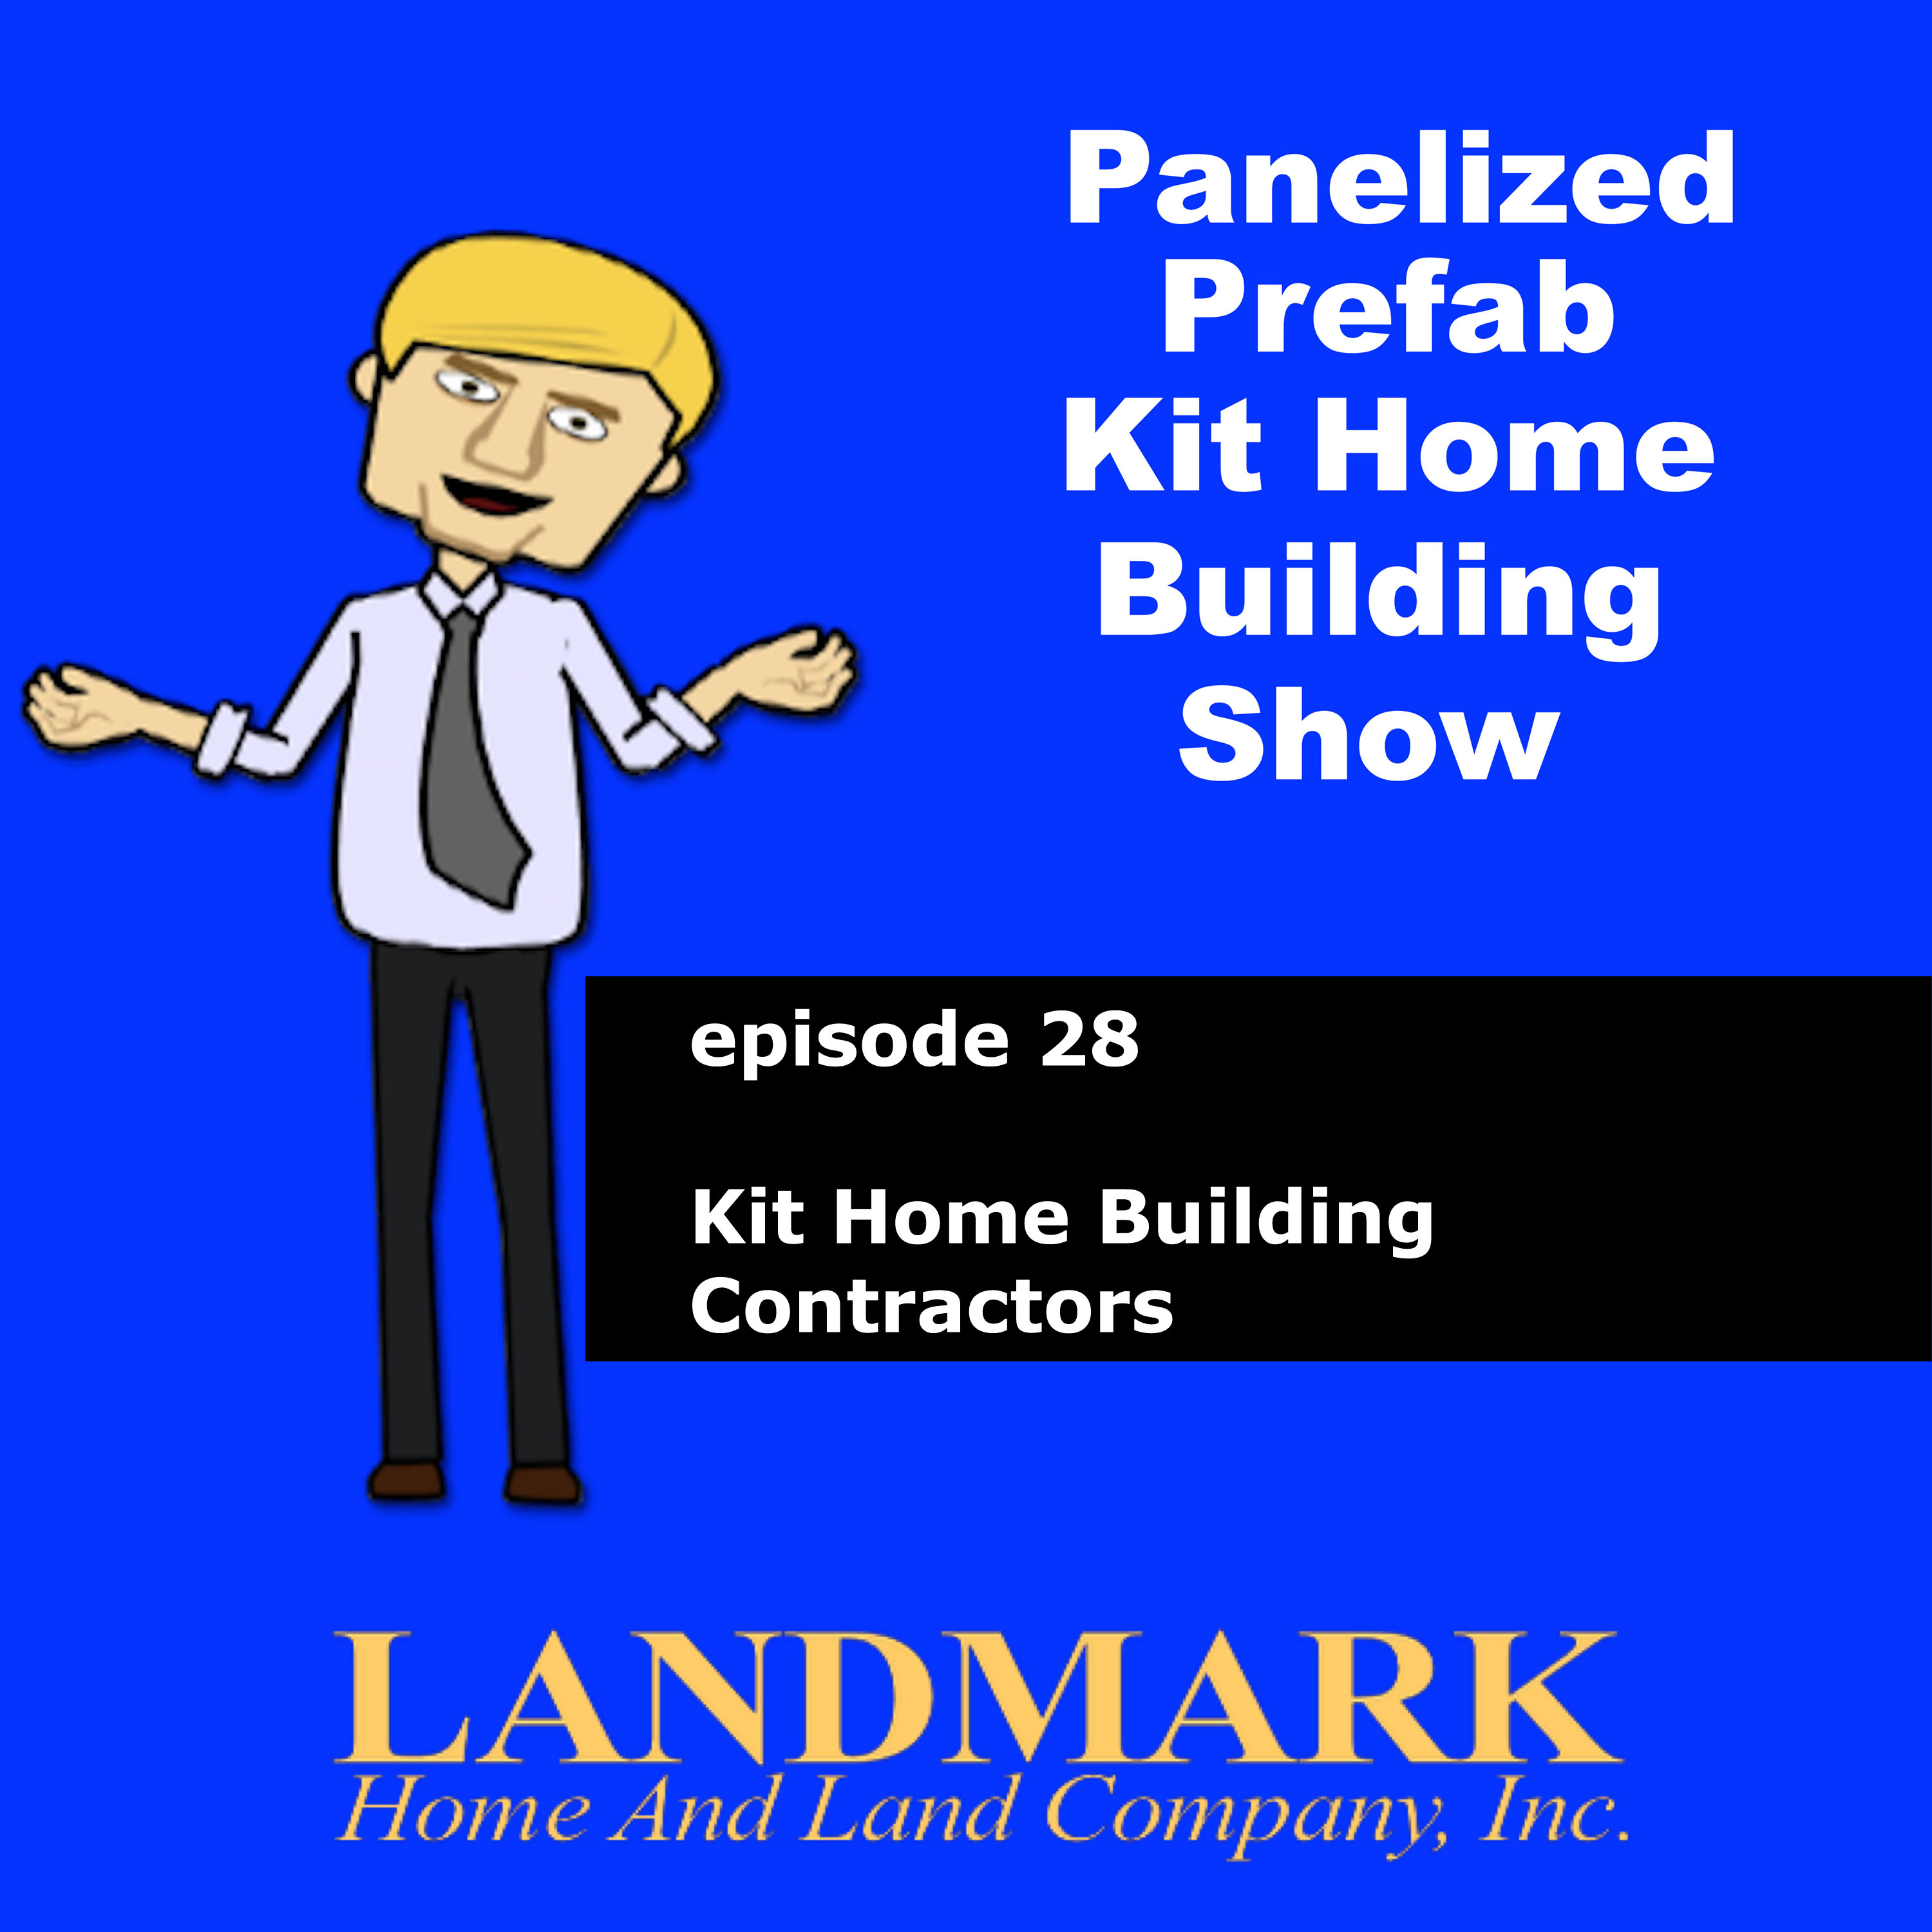 Kit Home Building Contractors Landmark Home And Land Company